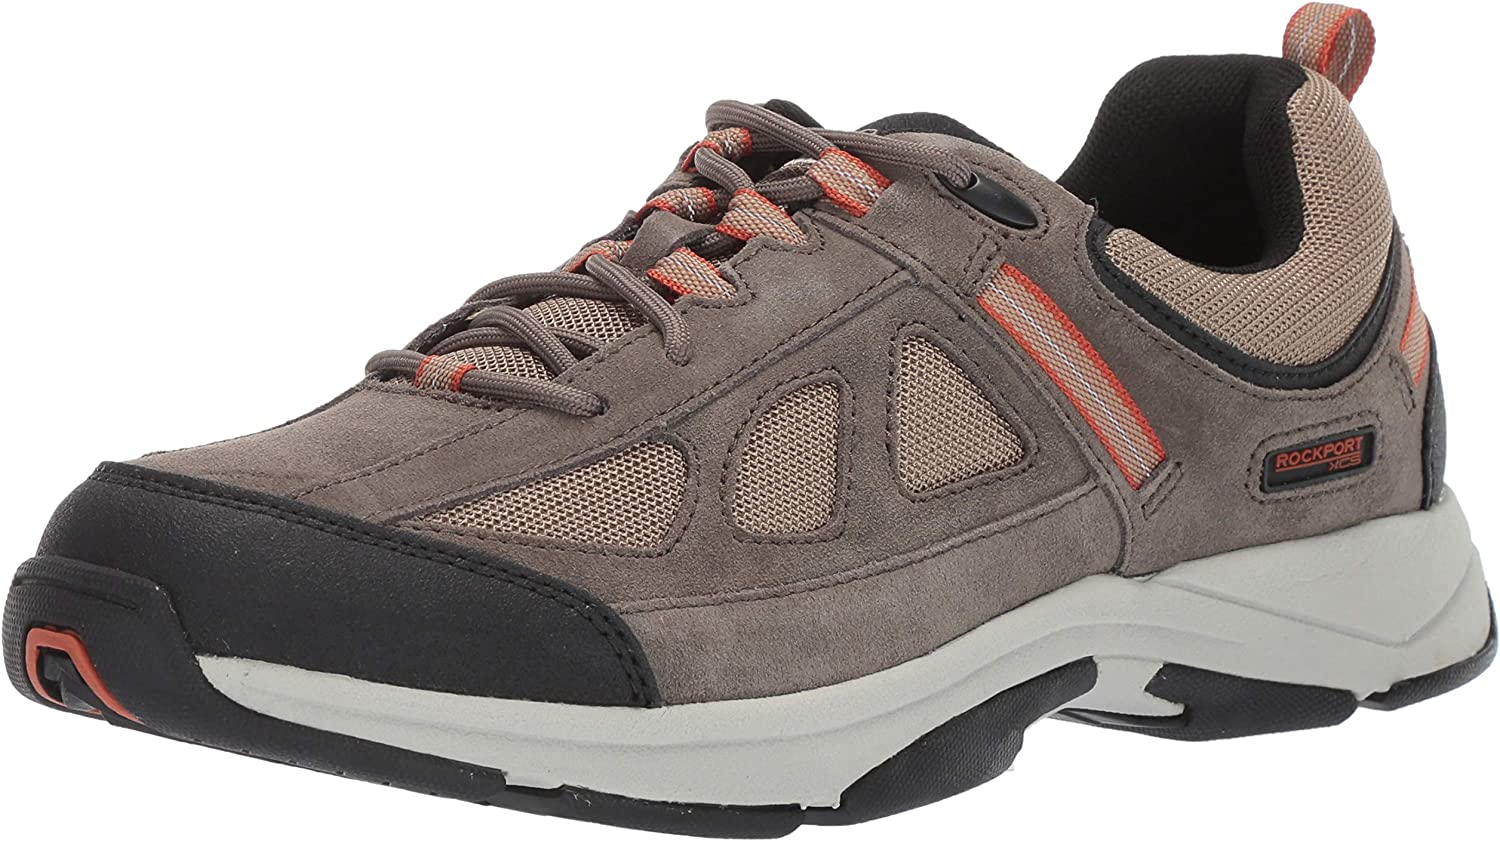 Rockport Men/'s Rock Cove Lace Up Taupe Suede